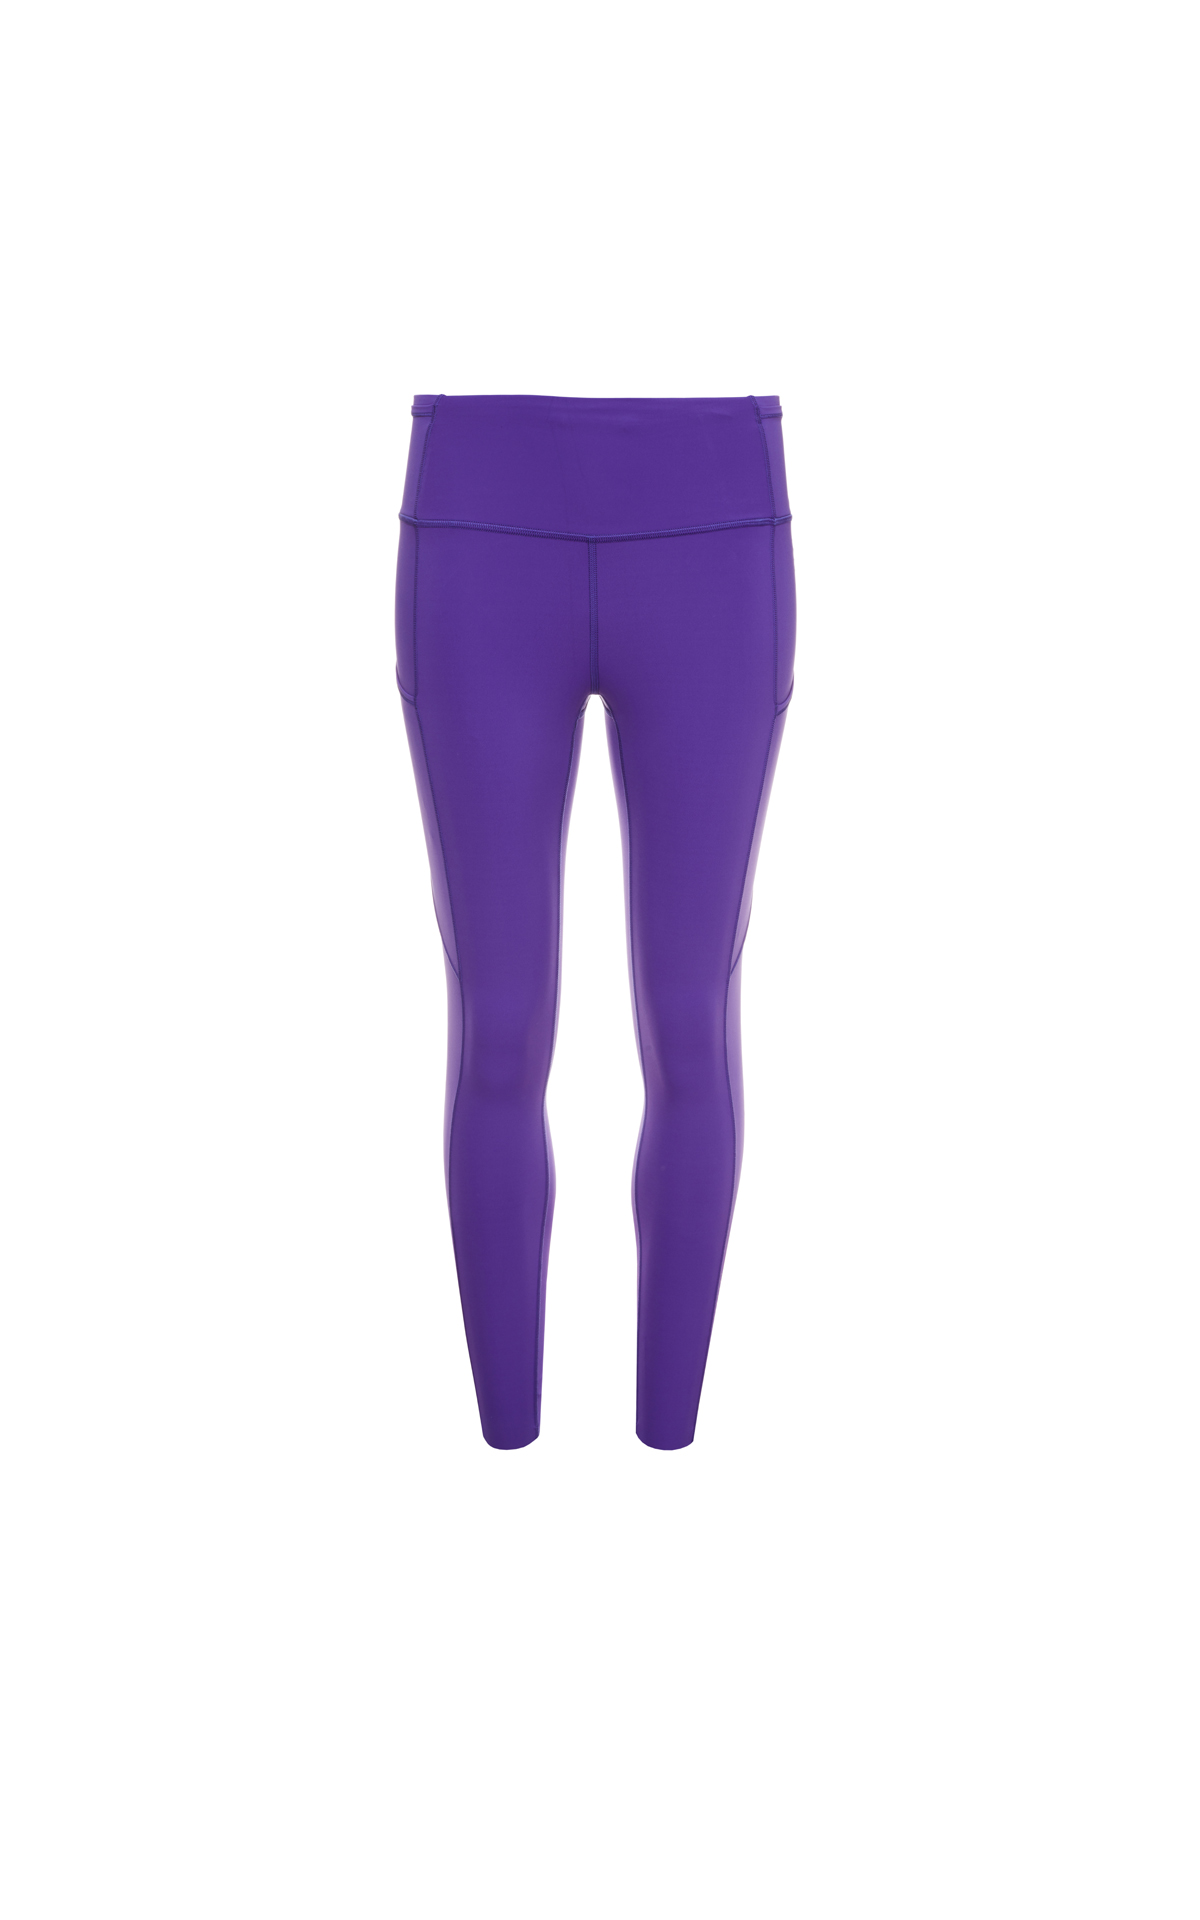 Lululemon  Fast and free tight leggings from Bicester Village